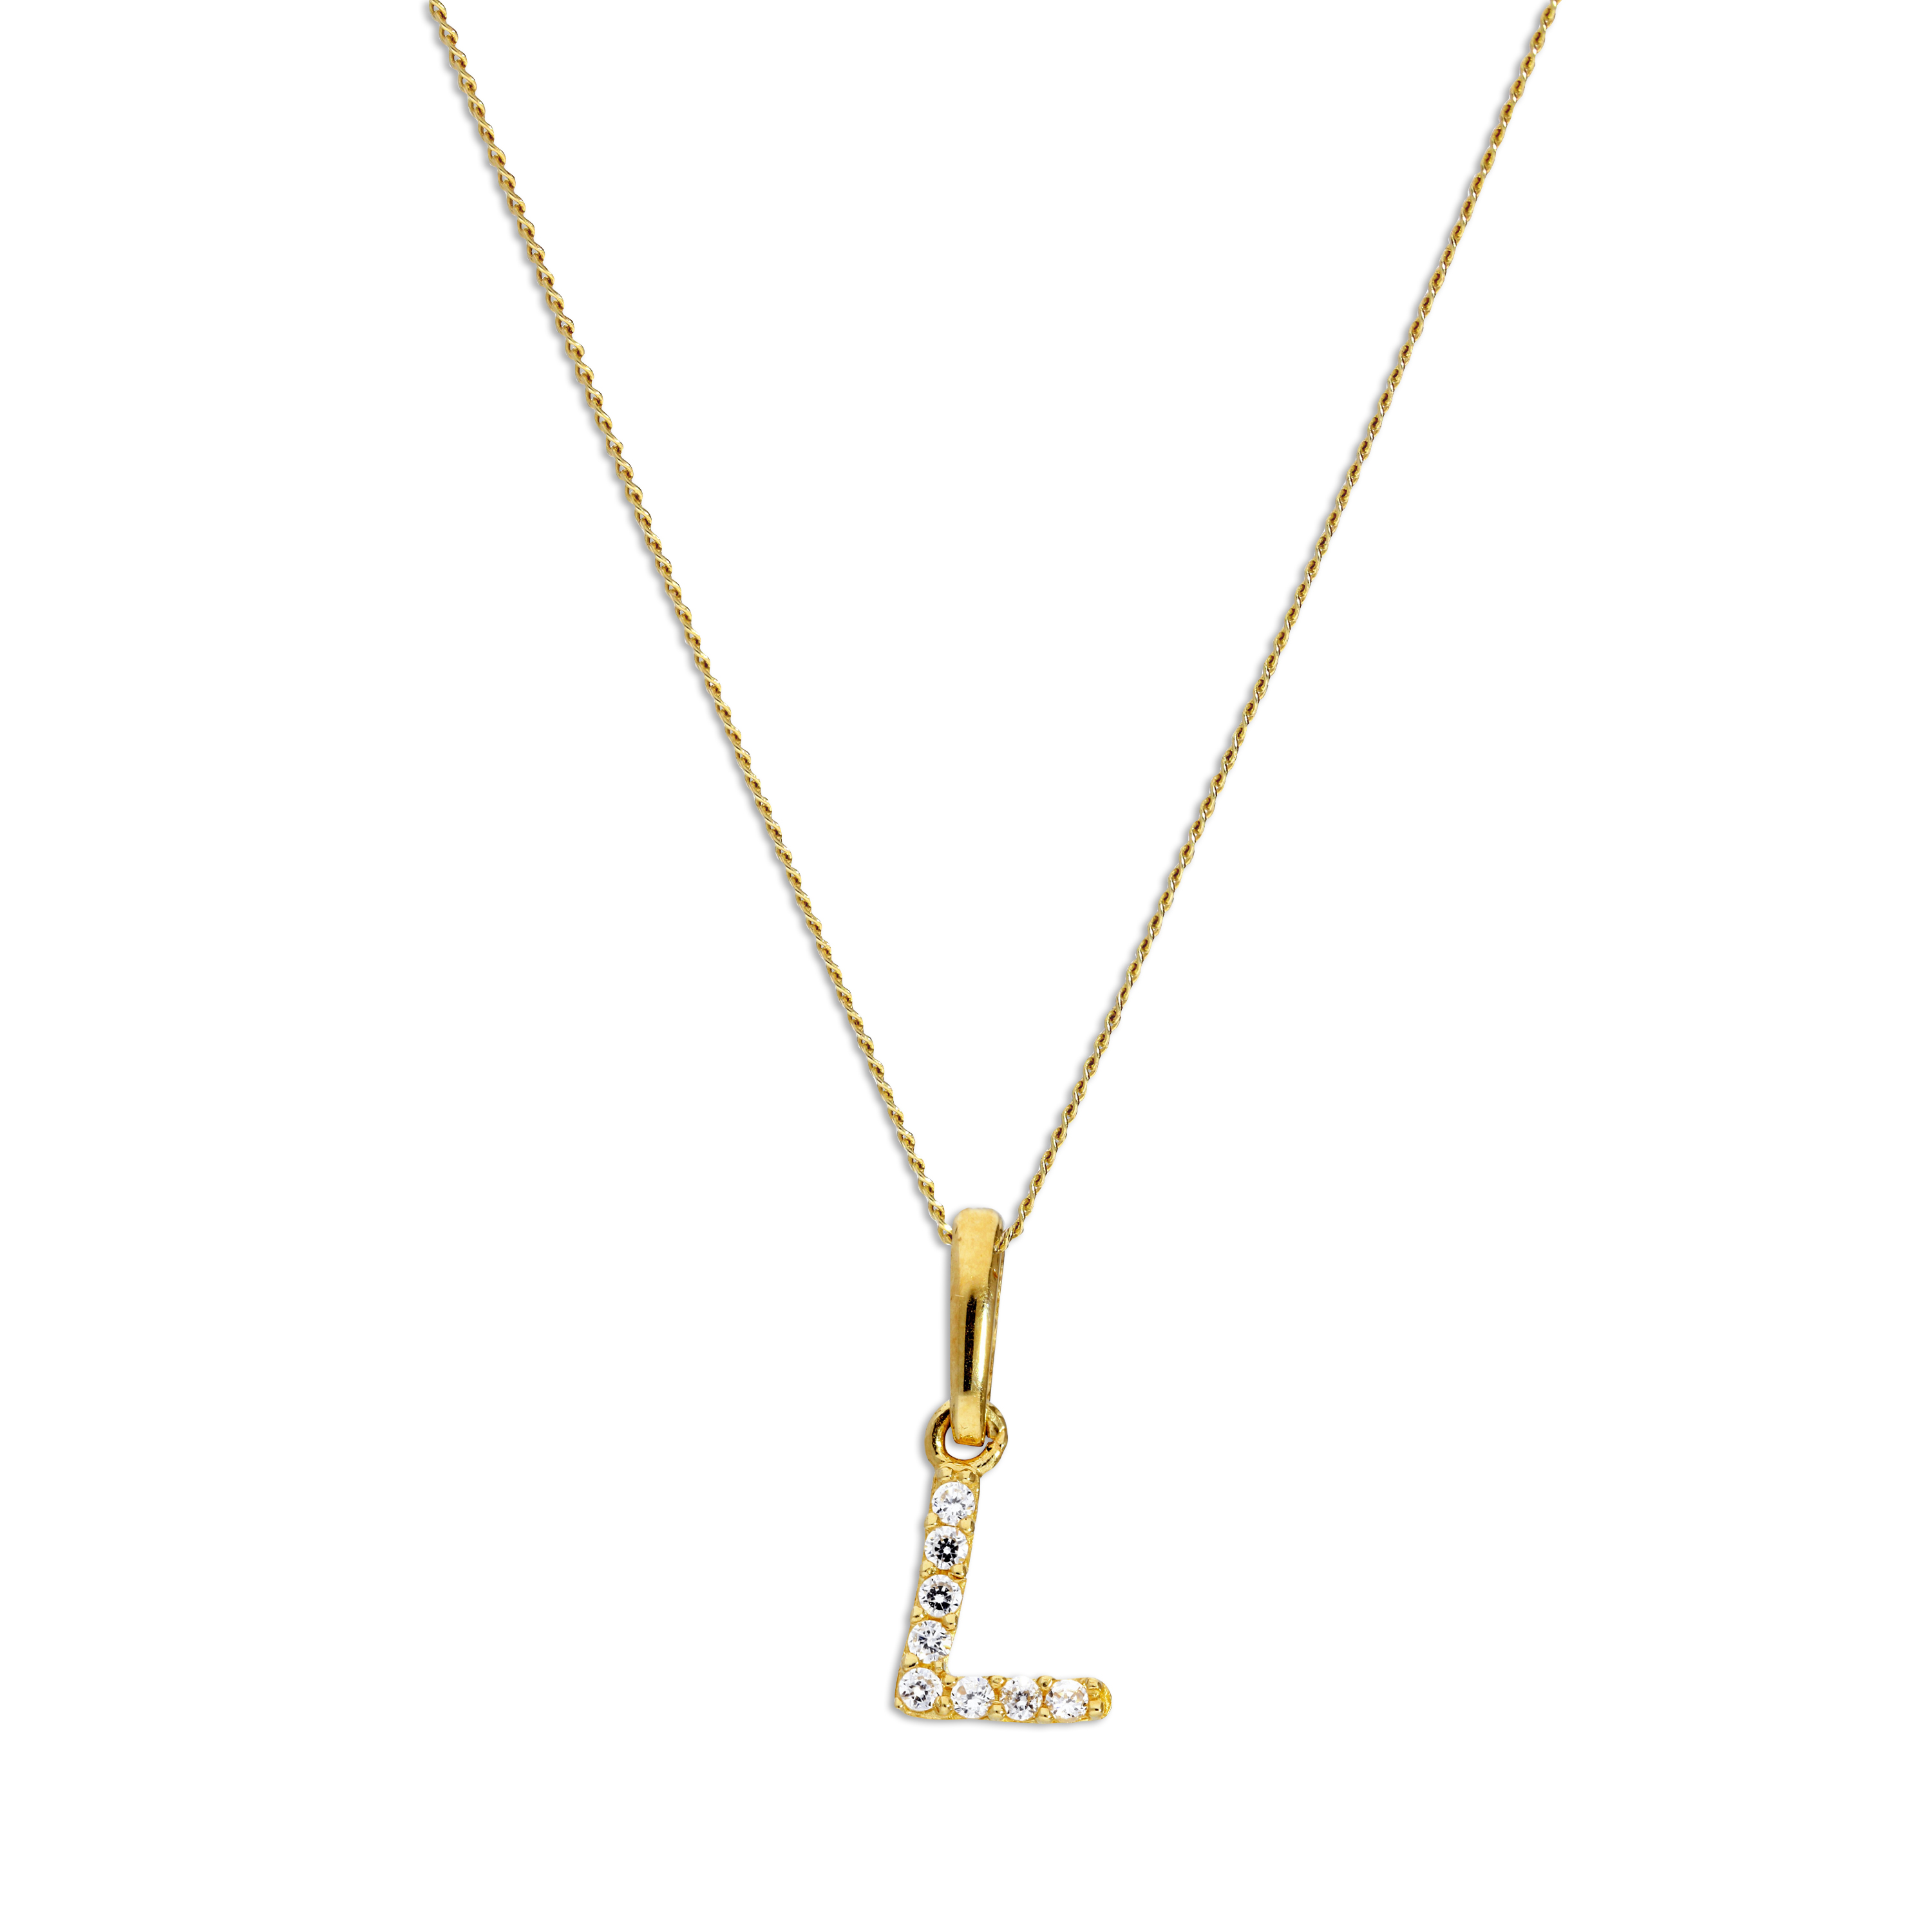 An image of 9ct Gold Clear CZ Crystal Script Alphabet Letter L Necklace 16 Inches Chain